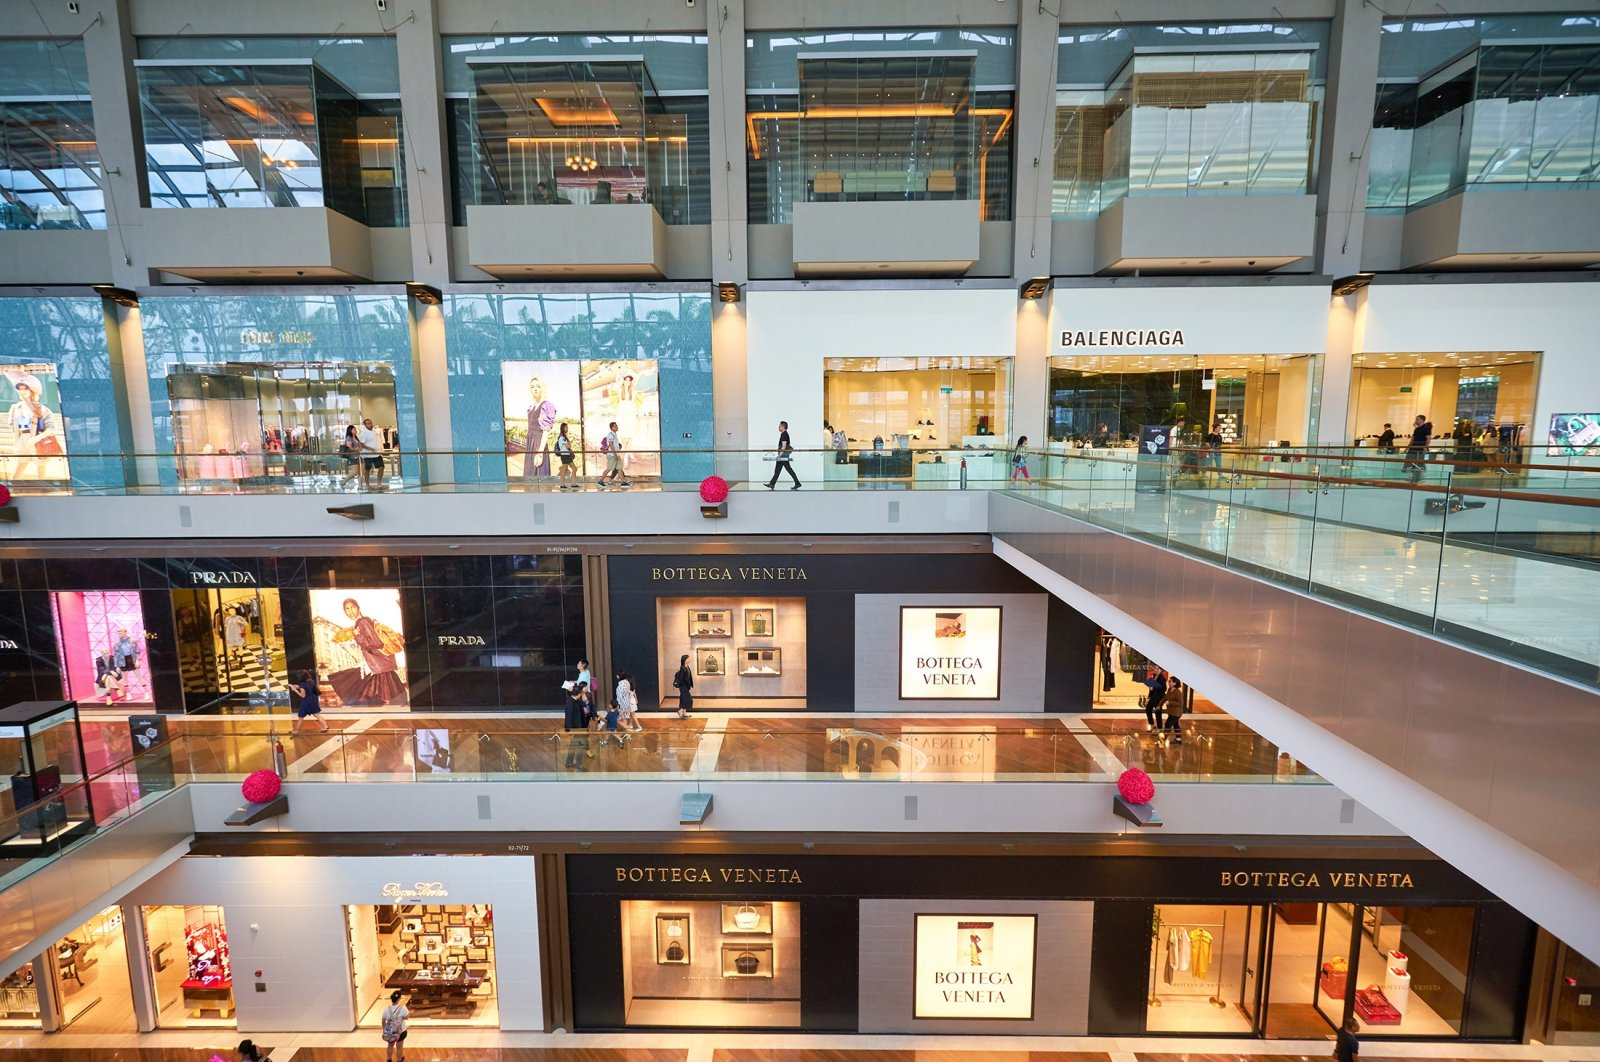 An interior of a shopping mall in Singapore, Jan. 20, 2020. (Shutterstock Photo)